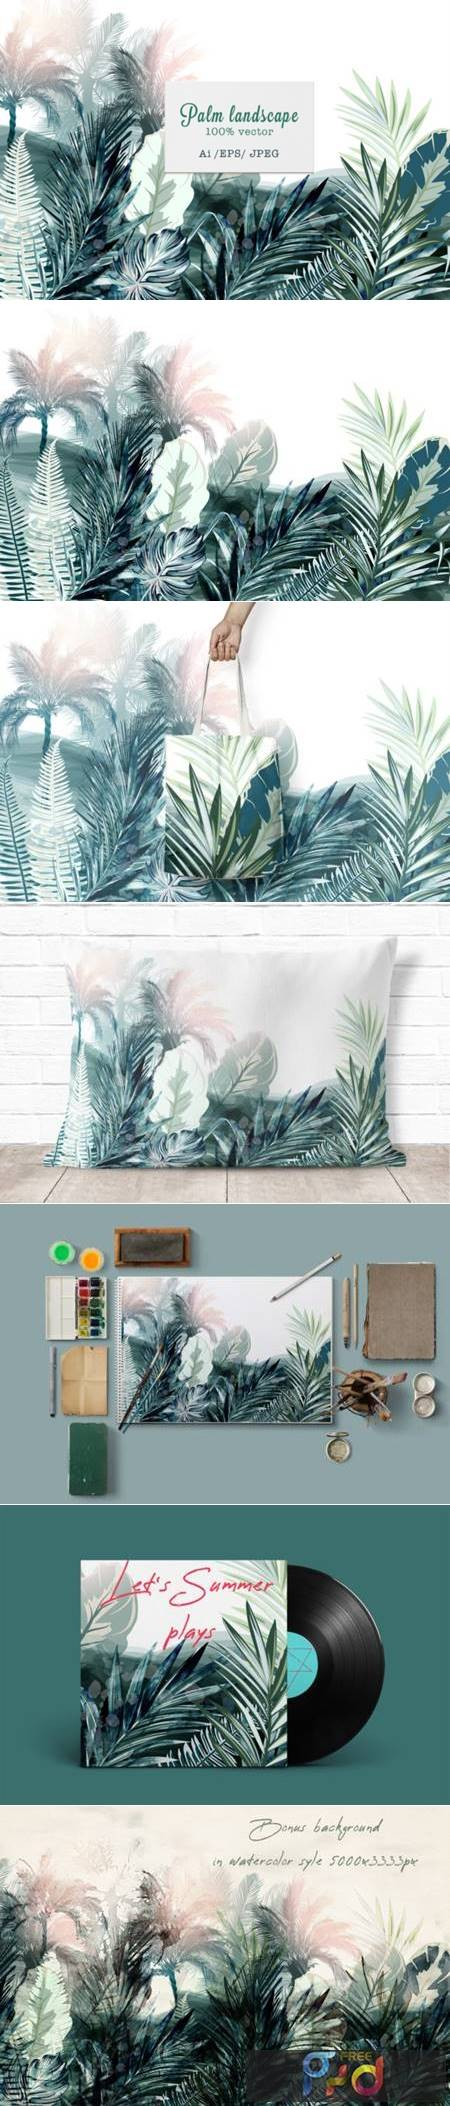 Tropical Landscape Vector Illustration 3799965 1